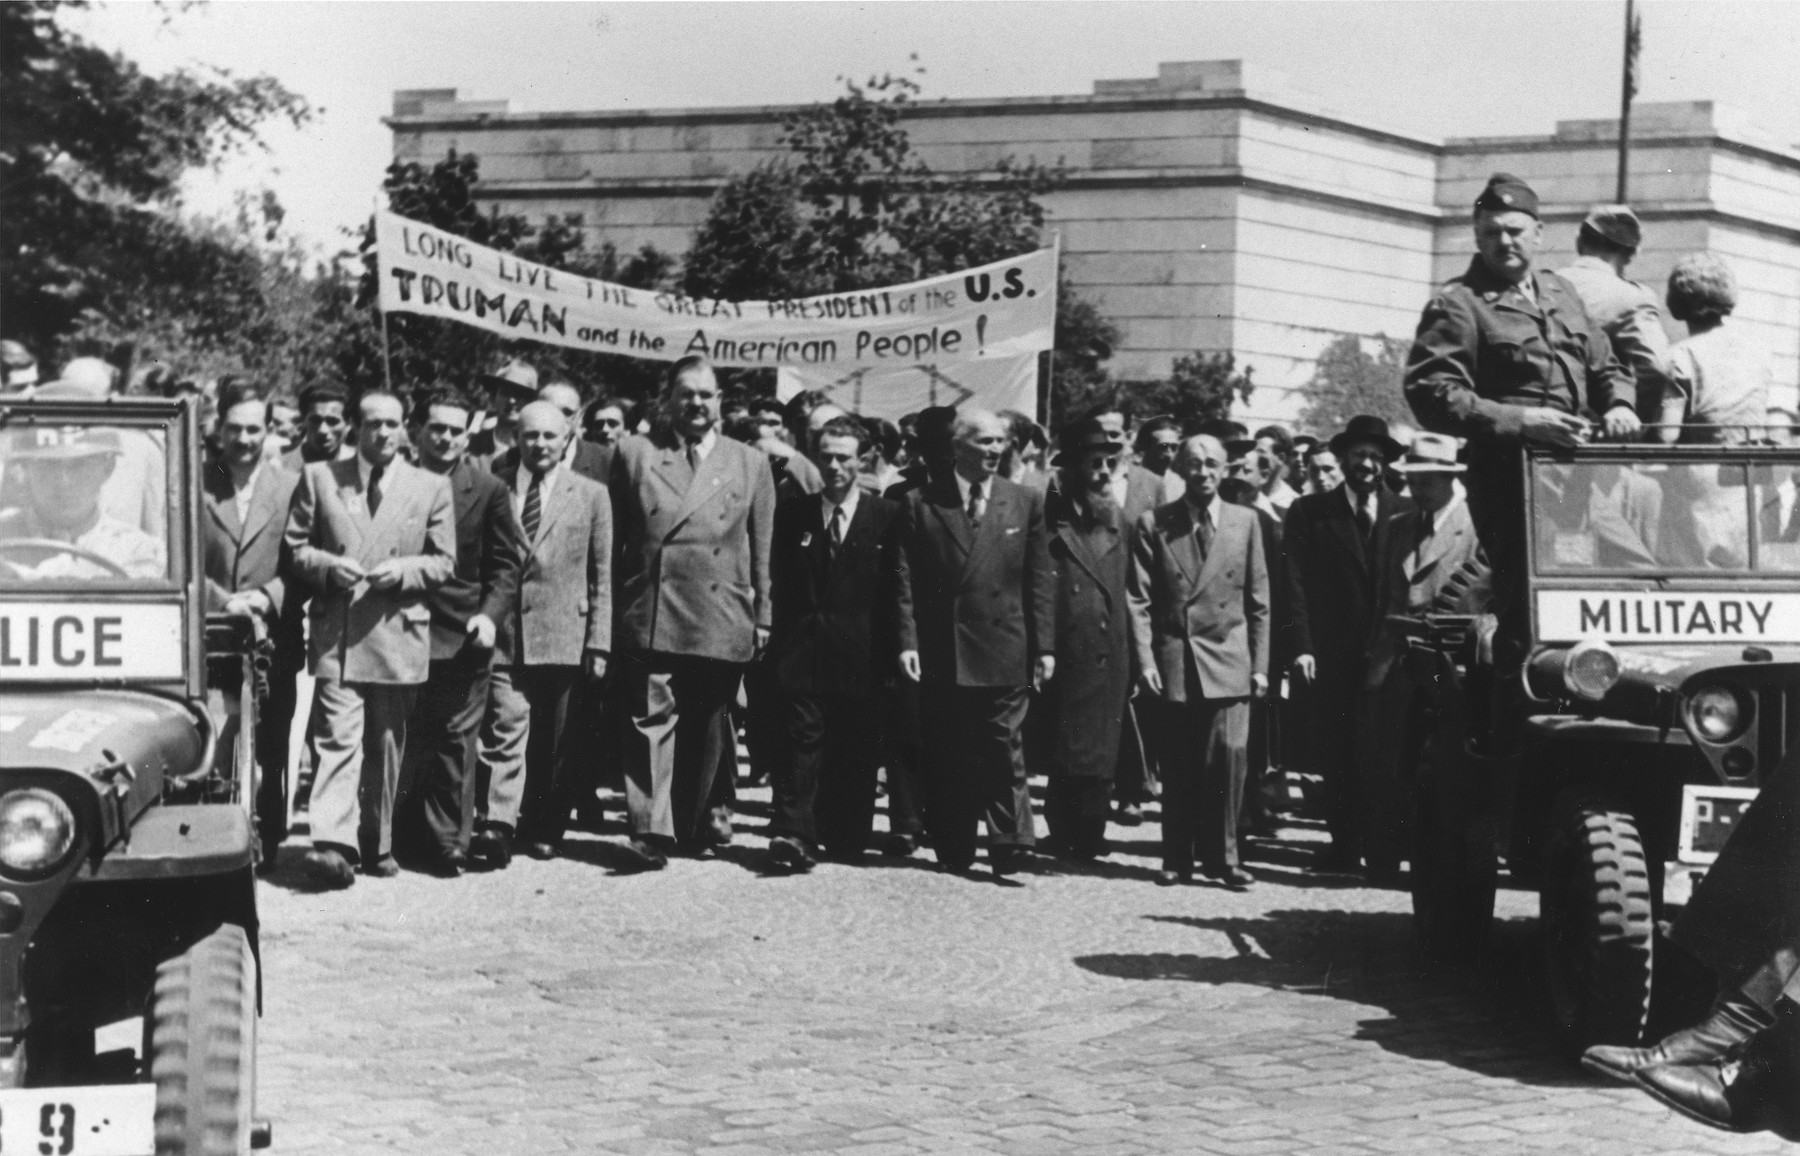 "Jewish DPs march beneath a banner that reads ""Long Live the Great President of the US Truman and the American People!""  Among those pictured is Philipp Auerbach (center)."